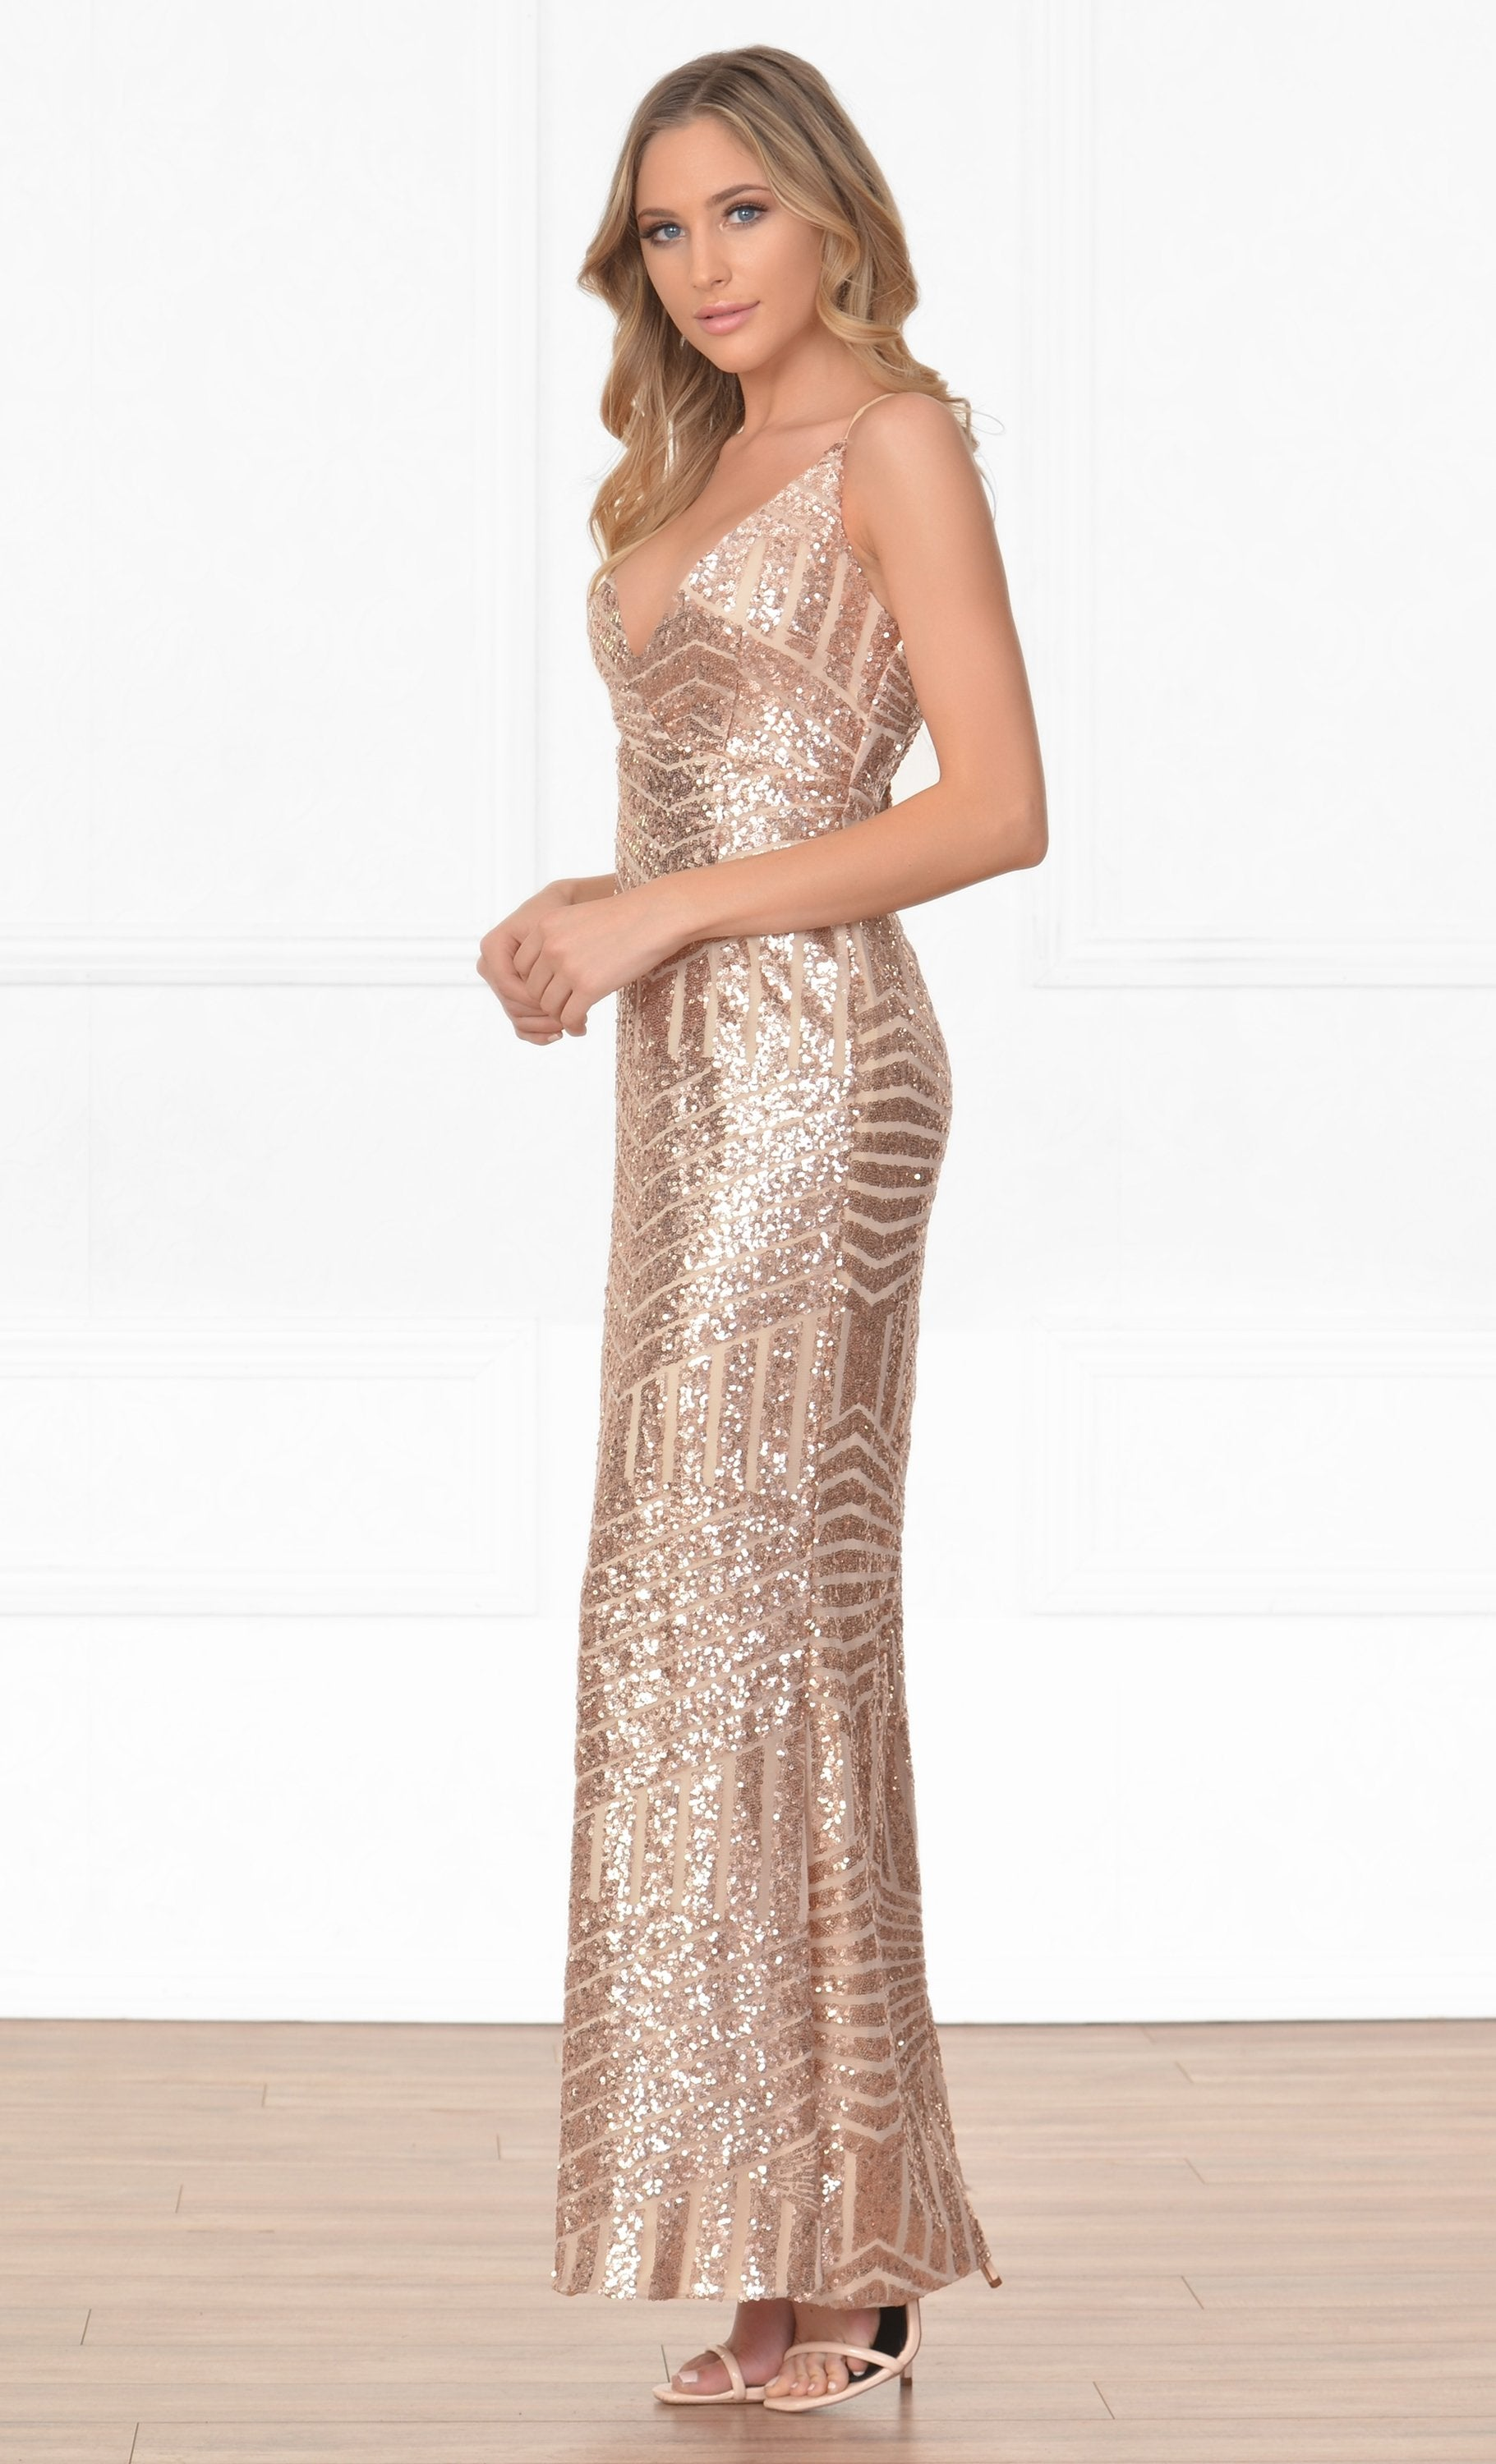 Indie XO My Moment To Shine Gold Beige Geometric Sequin Sleeveless Spaghetti Strap Cross Wrap V Neck Thigh Slit Maxi Dress